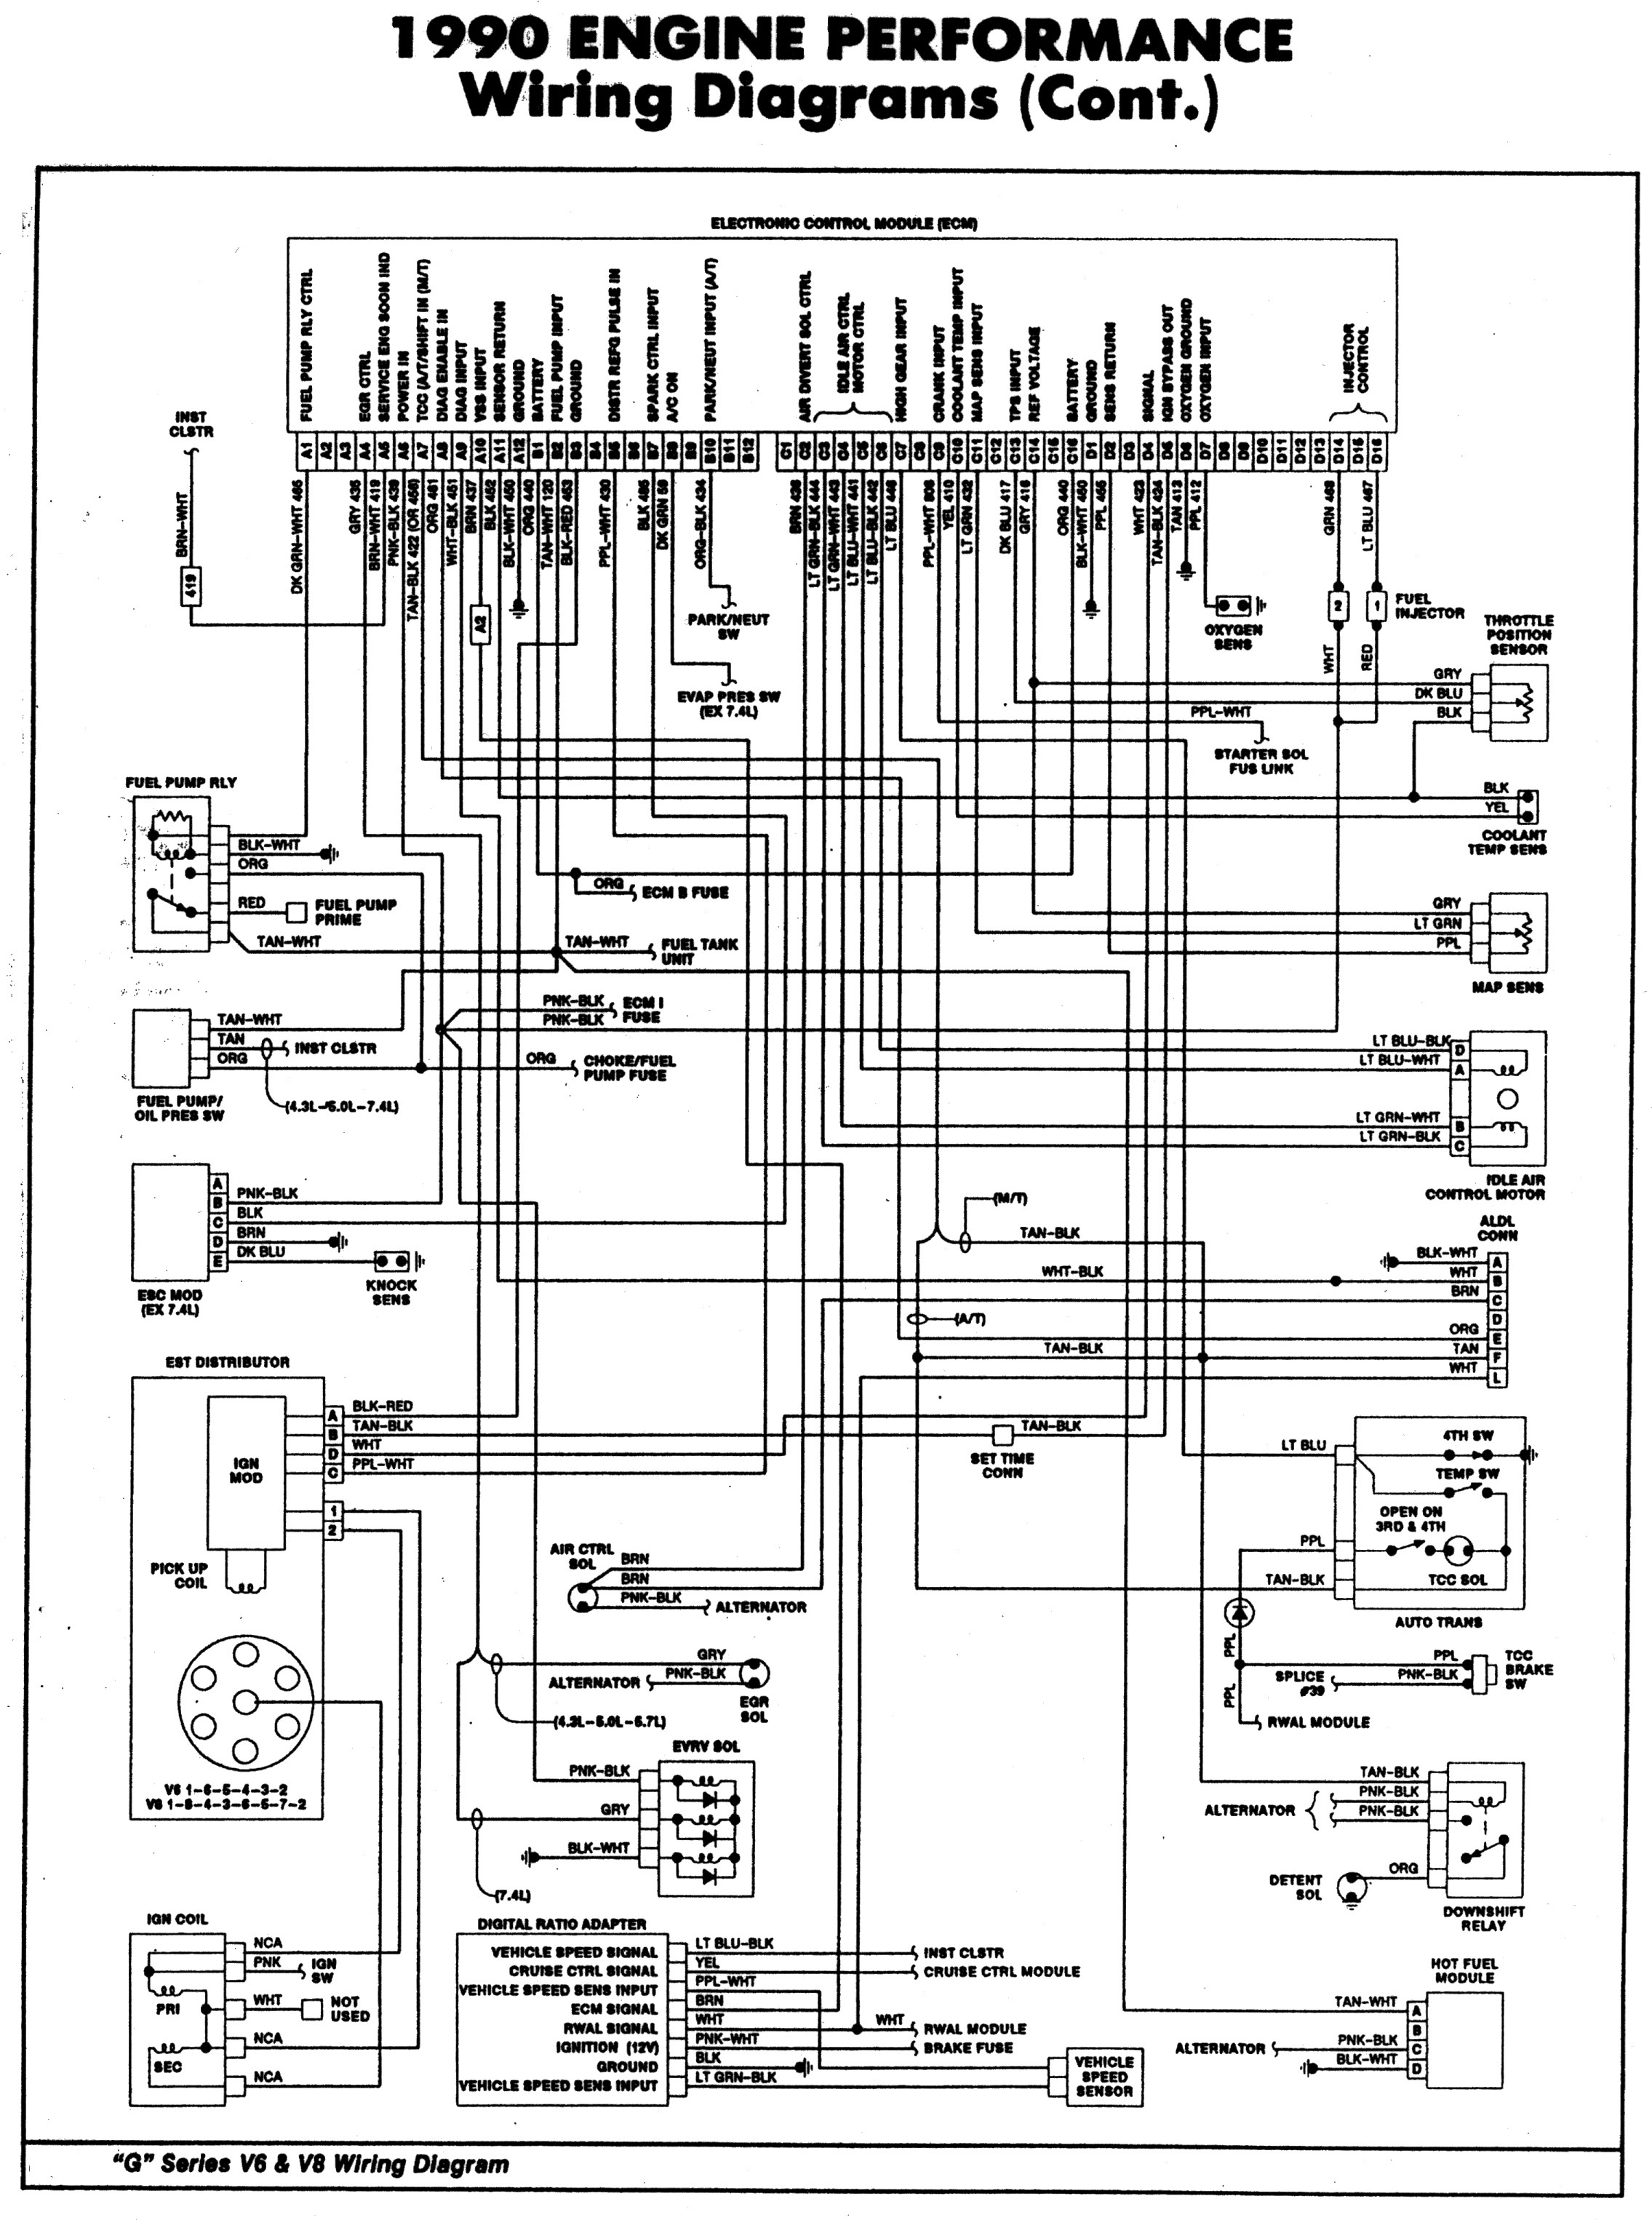 1990 chevy van wiring diagram wiring diagrams value 1990 g20 chevy van wiring diagrams [ 2271 x 3051 Pixel ]